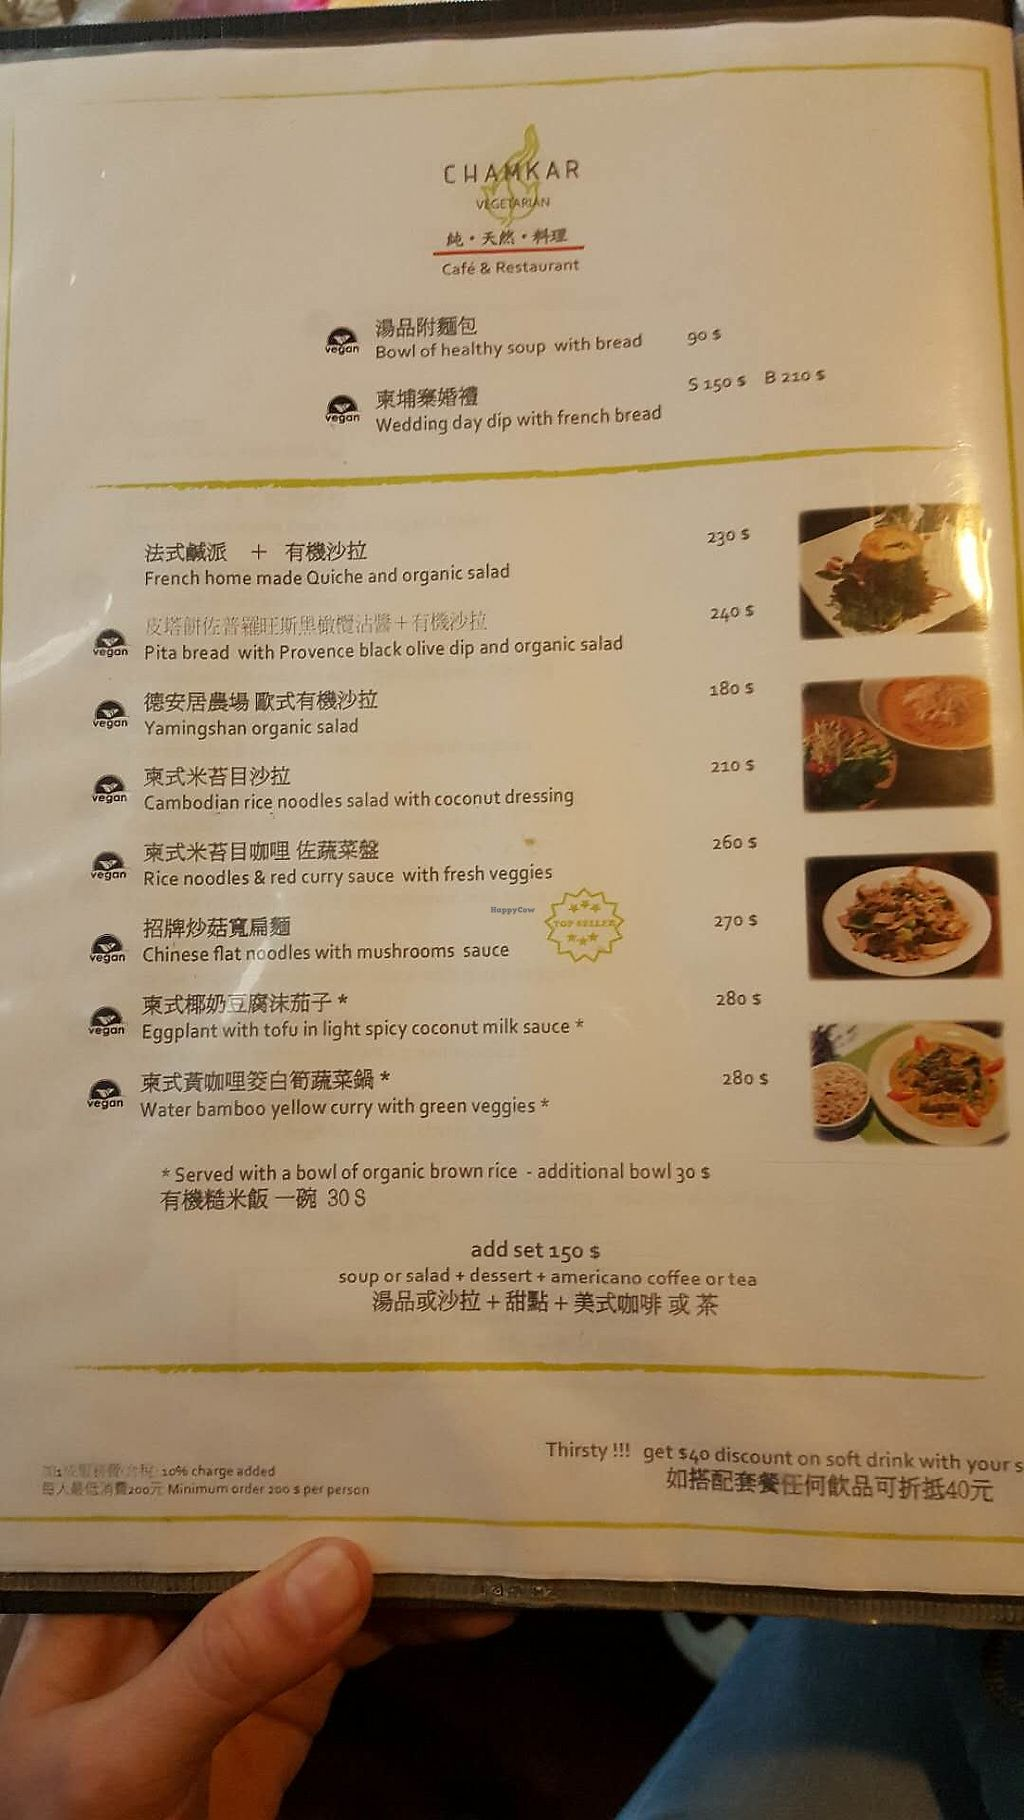 "Photo of Chamkar  by <a href=""/members/profile/AnnLiu"">AnnLiu</a> <br/>Page of the menu, mostly vegan! I'm glad to see the sign <br/> April 25, 2018  - <a href='/contact/abuse/image/48124/390809'>Report</a>"